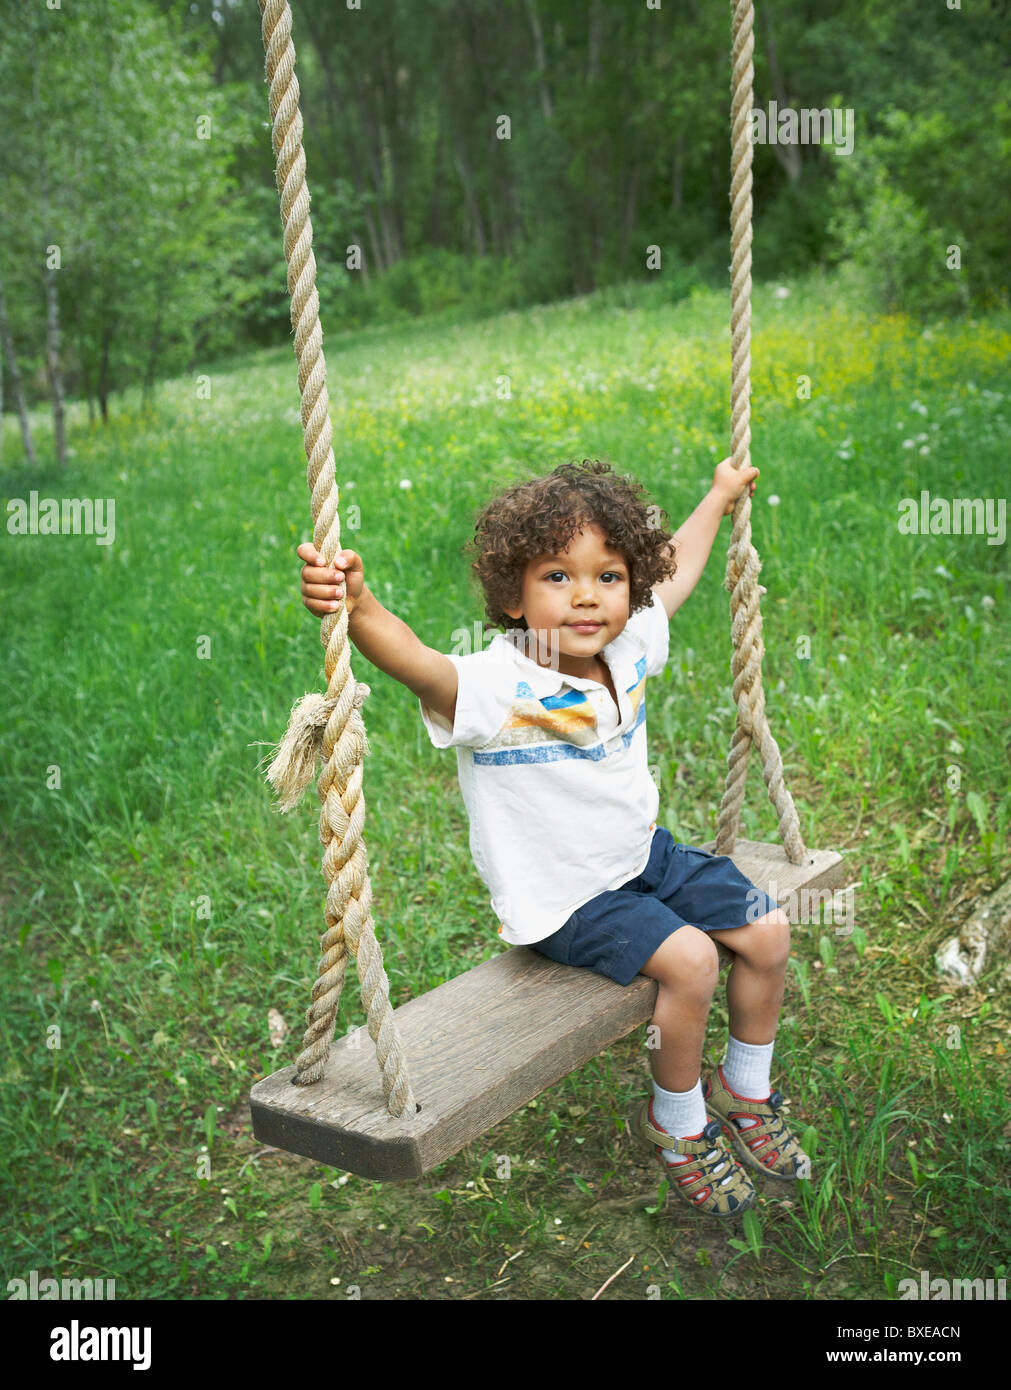 Young child sitting on large outdoor swing Stock Photo ...